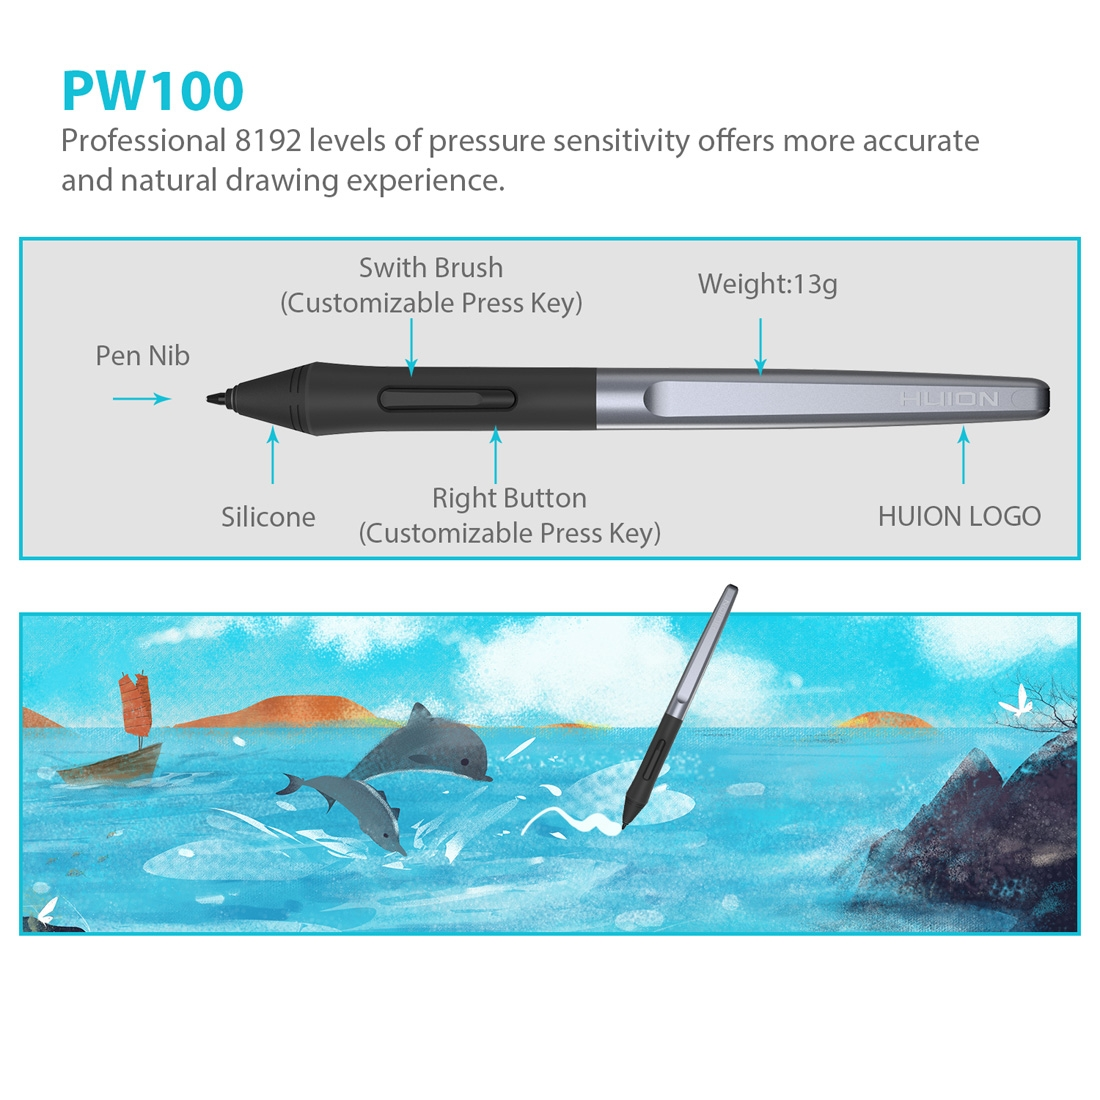 HUION H610Pro V2 5080LPI Professional Art USB Graphics Drawing Tablet for Windows / Mac OS, with Battery-free Pen